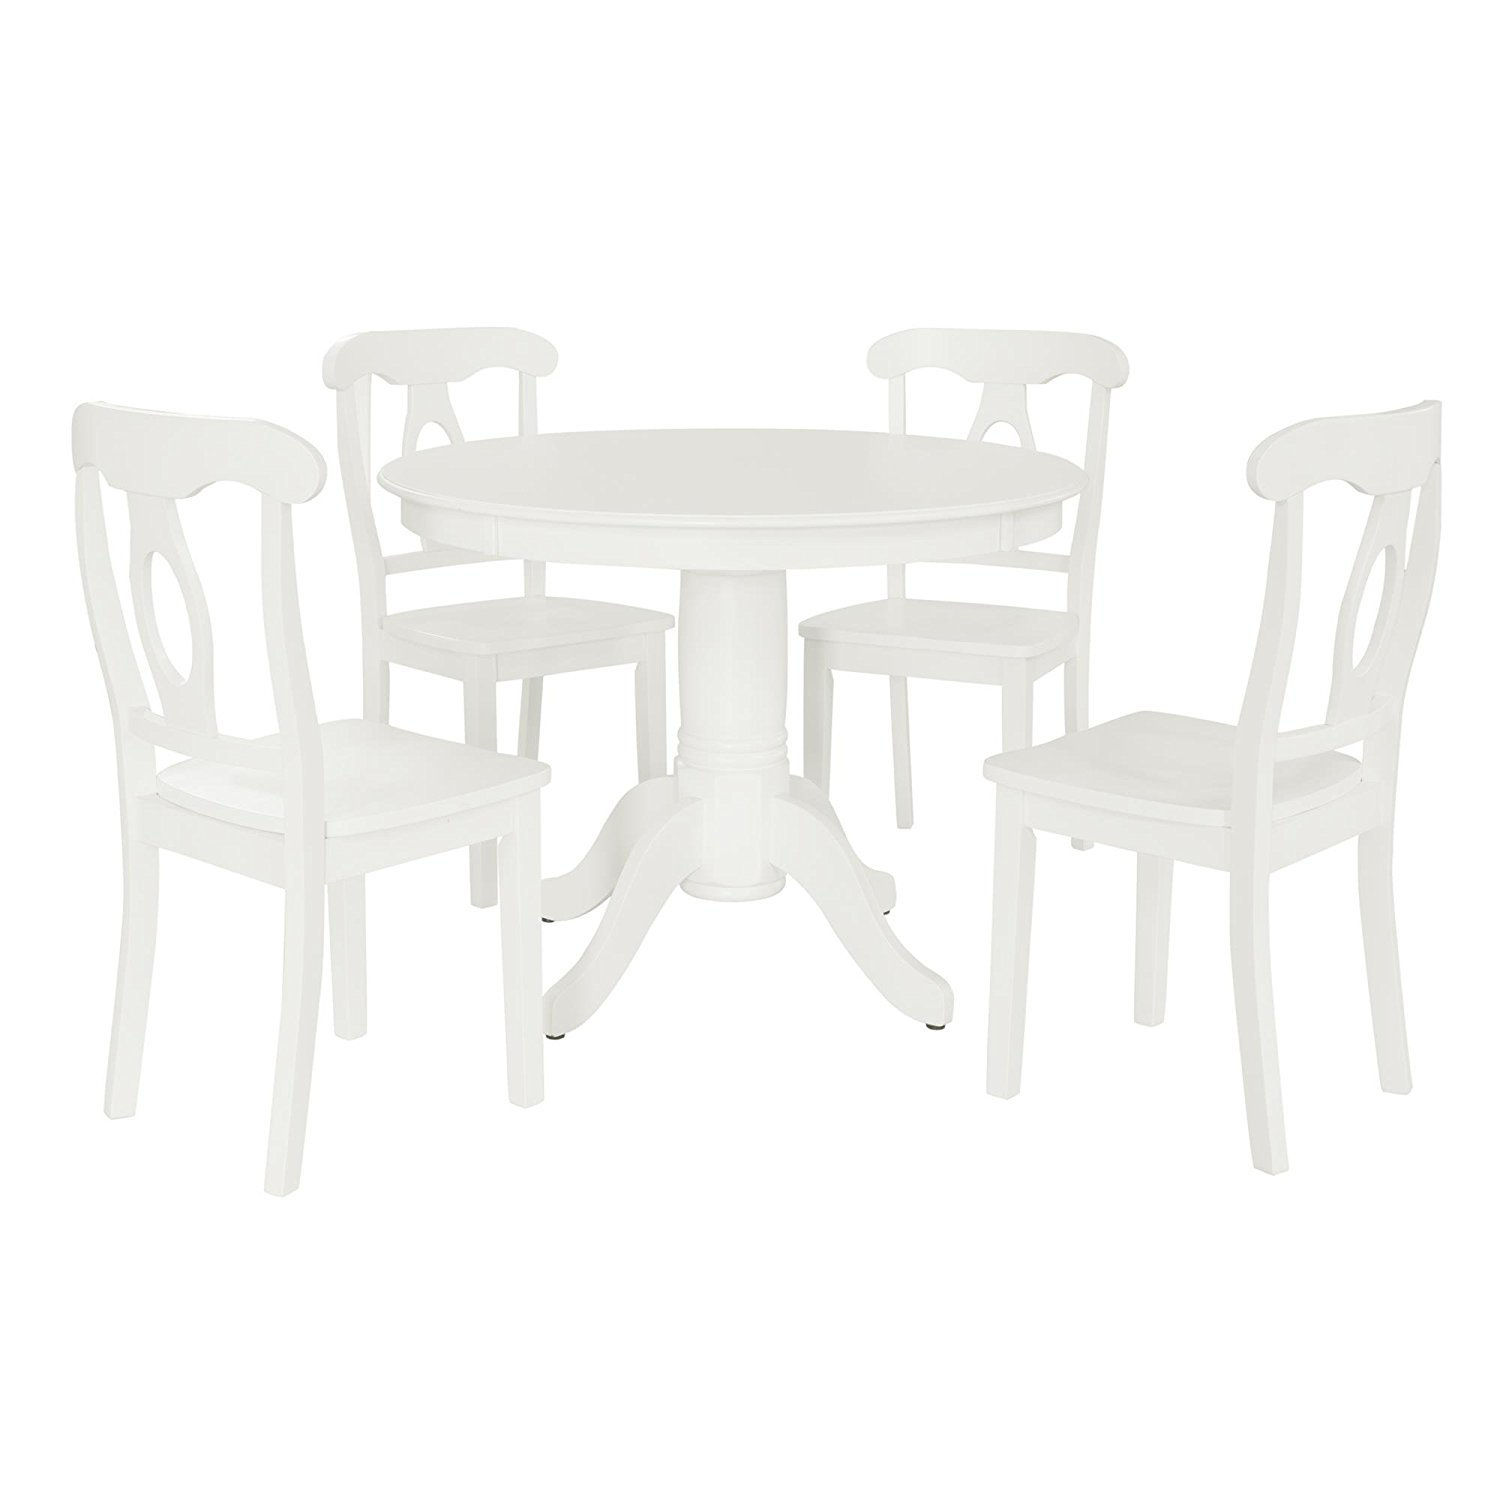 Aubrey 5 piece Traditional Height Pedestal Dining Set, White by Dorel Living (Image #1)